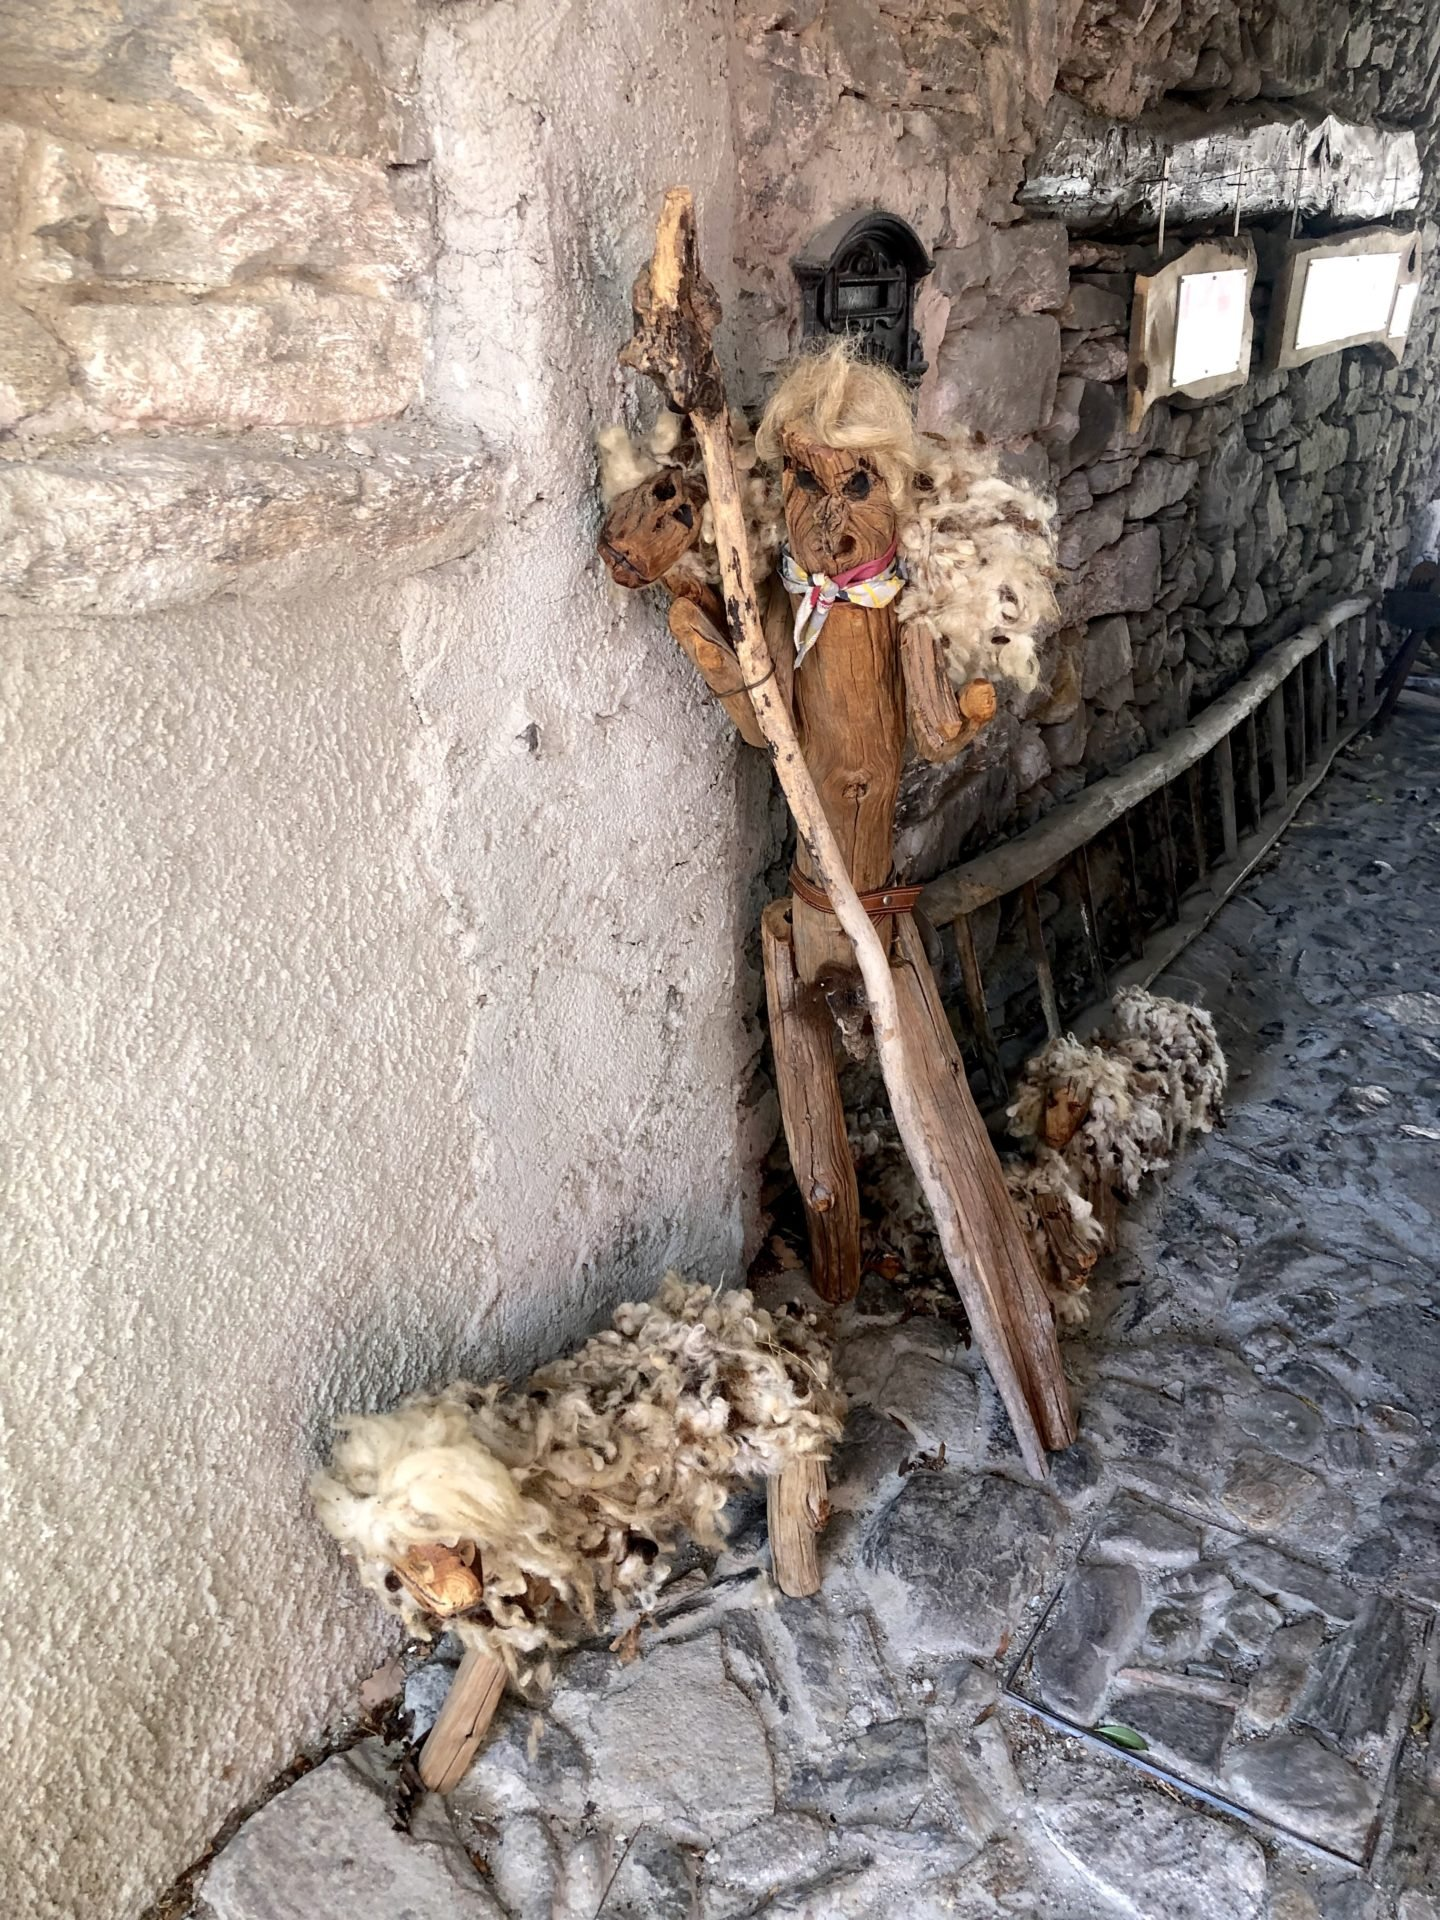 A shepard and sheep made out of wood in the town of Musignano, Lake Maggiore